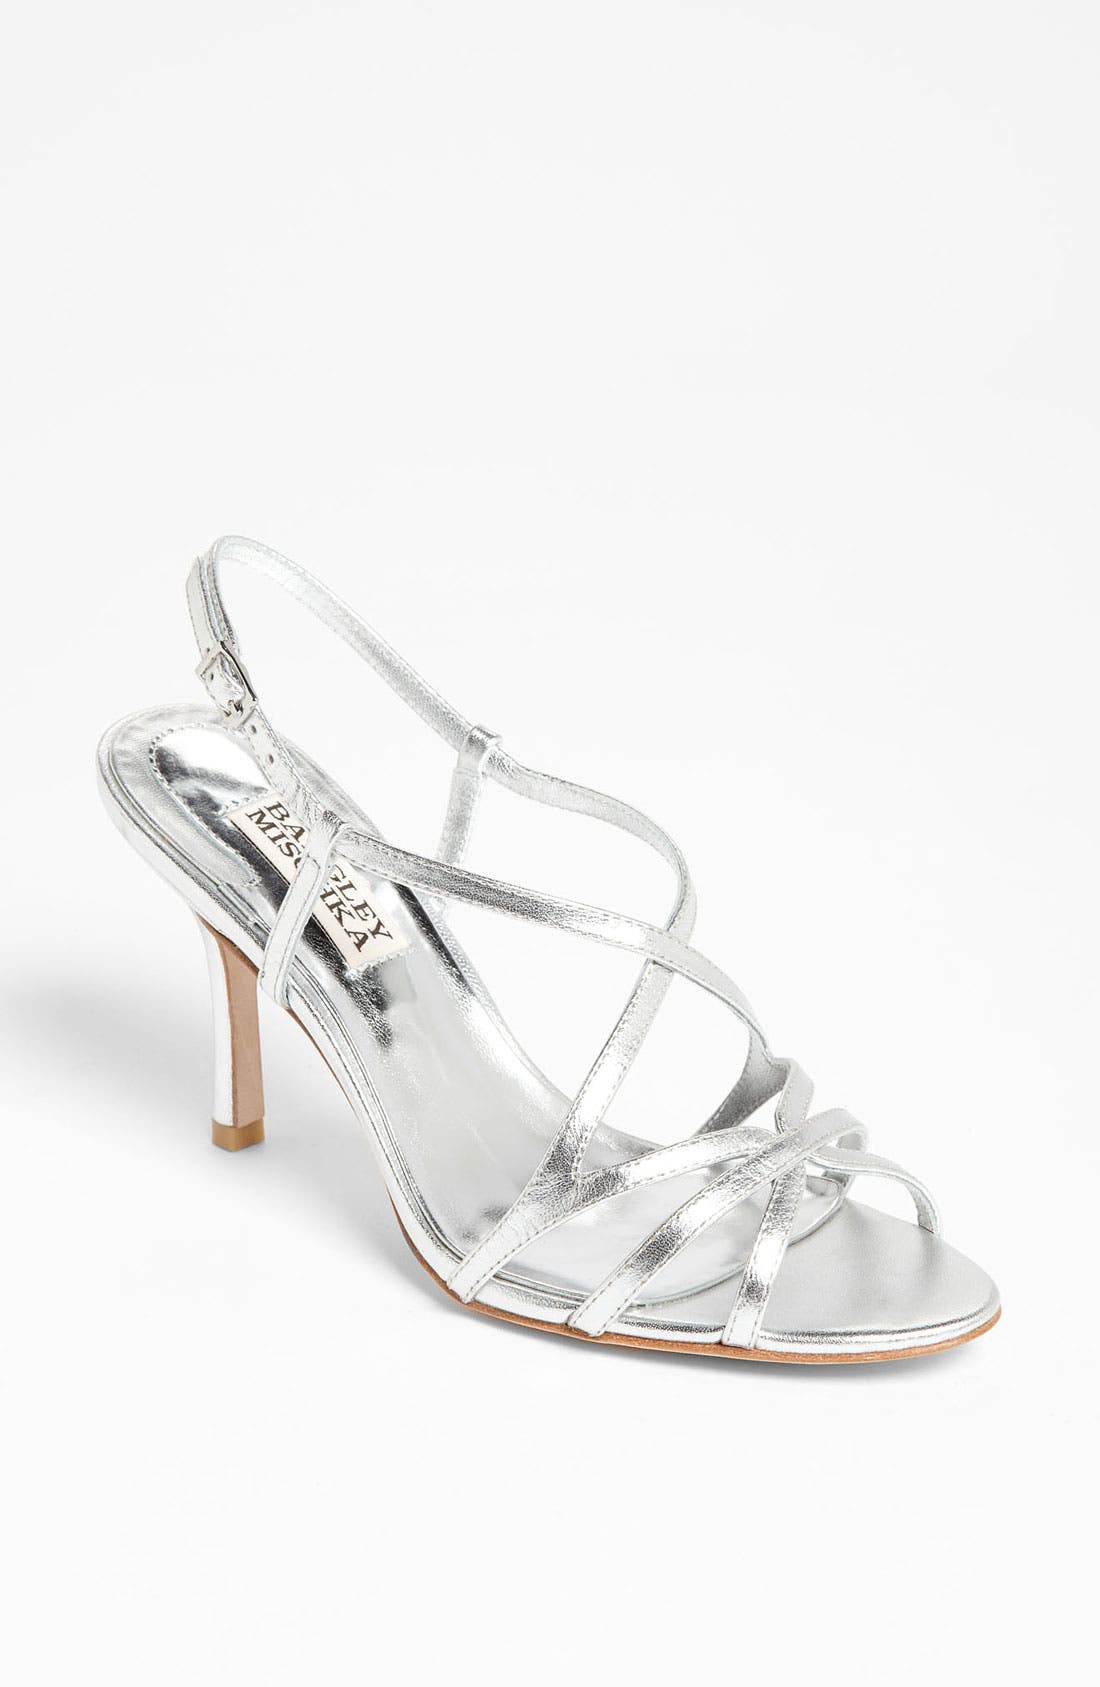 Alternate Image 1 Selected - Badgley Mischka 'Ava II' Sandal